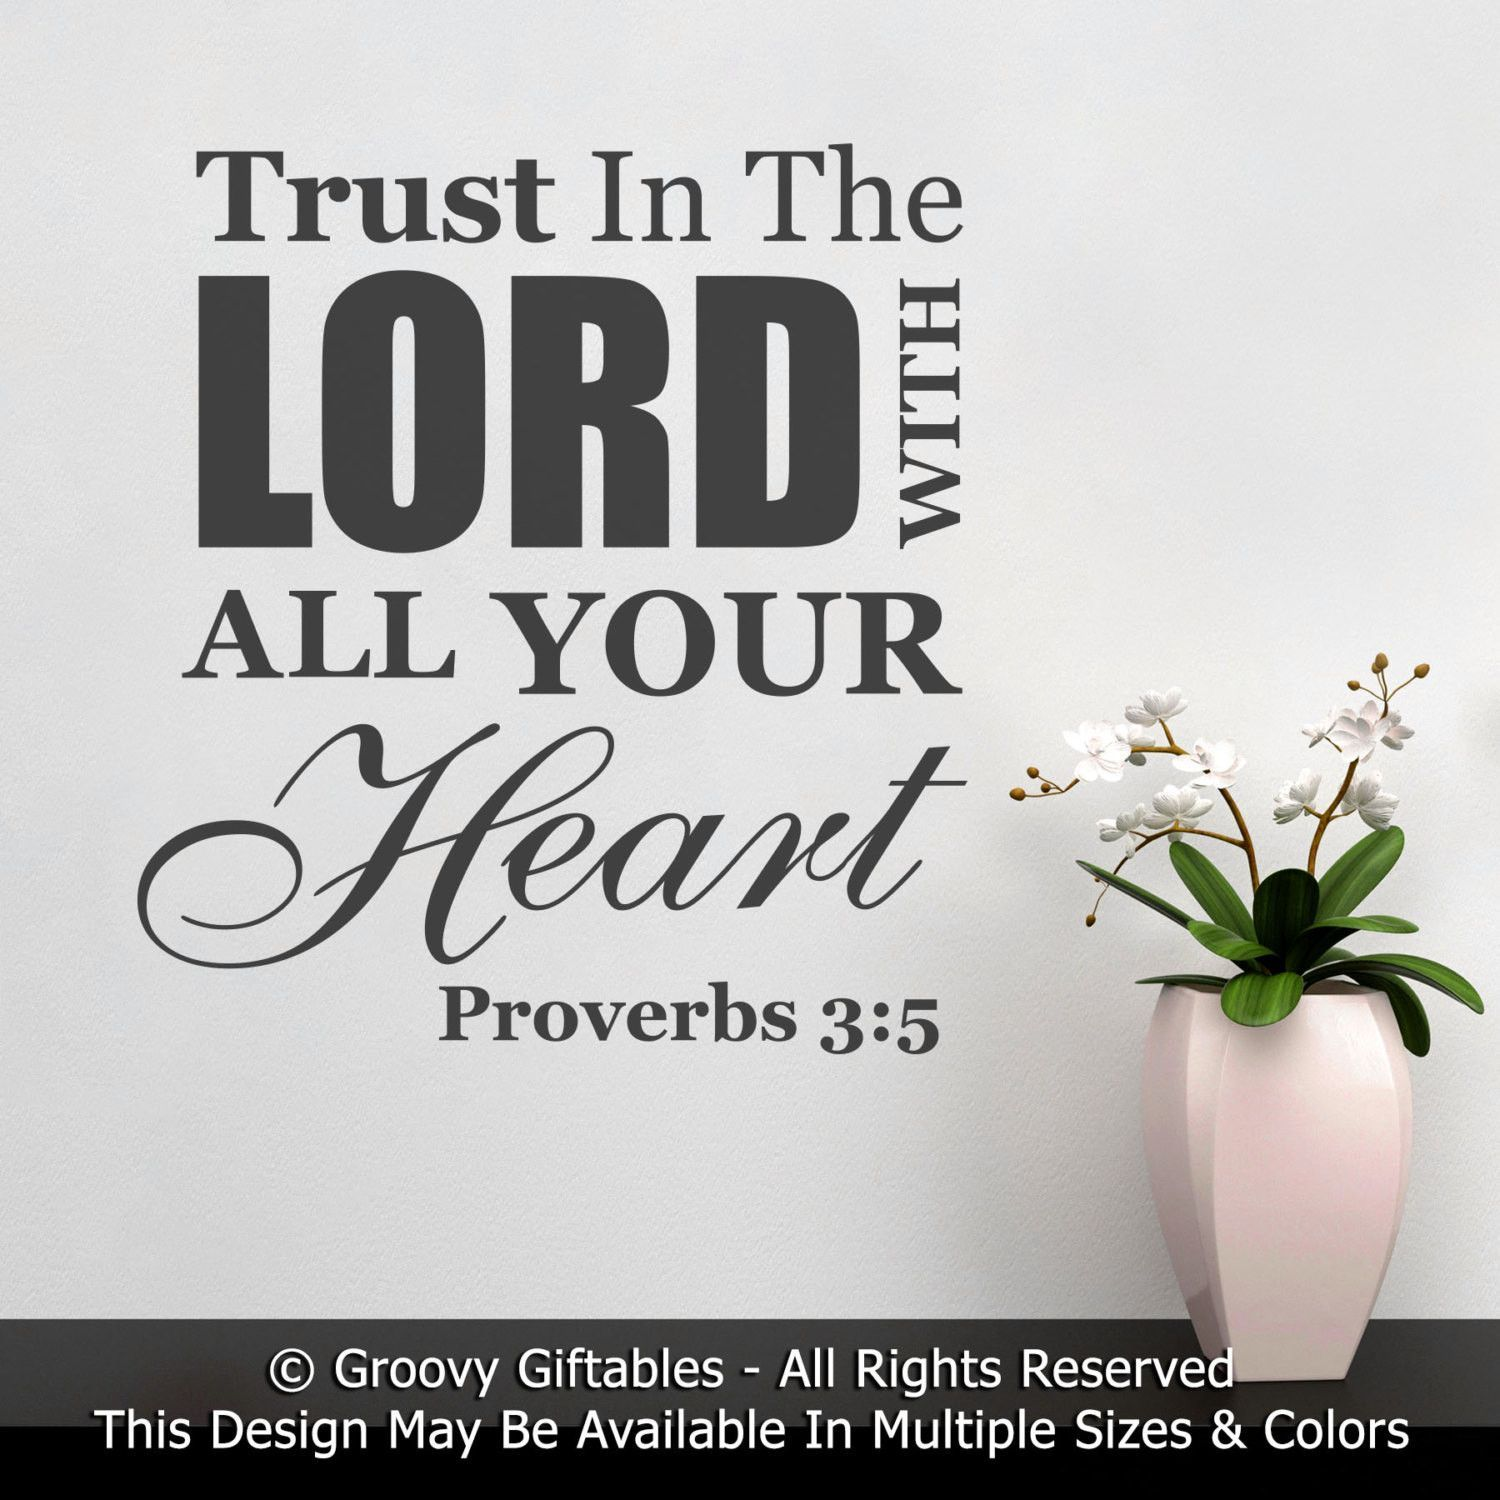 Wall decal trust in the lord with all your heart proverbs bible wall decal trust in the lord with all your heart proverbs bible verse word art christian wall decorchristian giftschristian faithwall negle Gallery